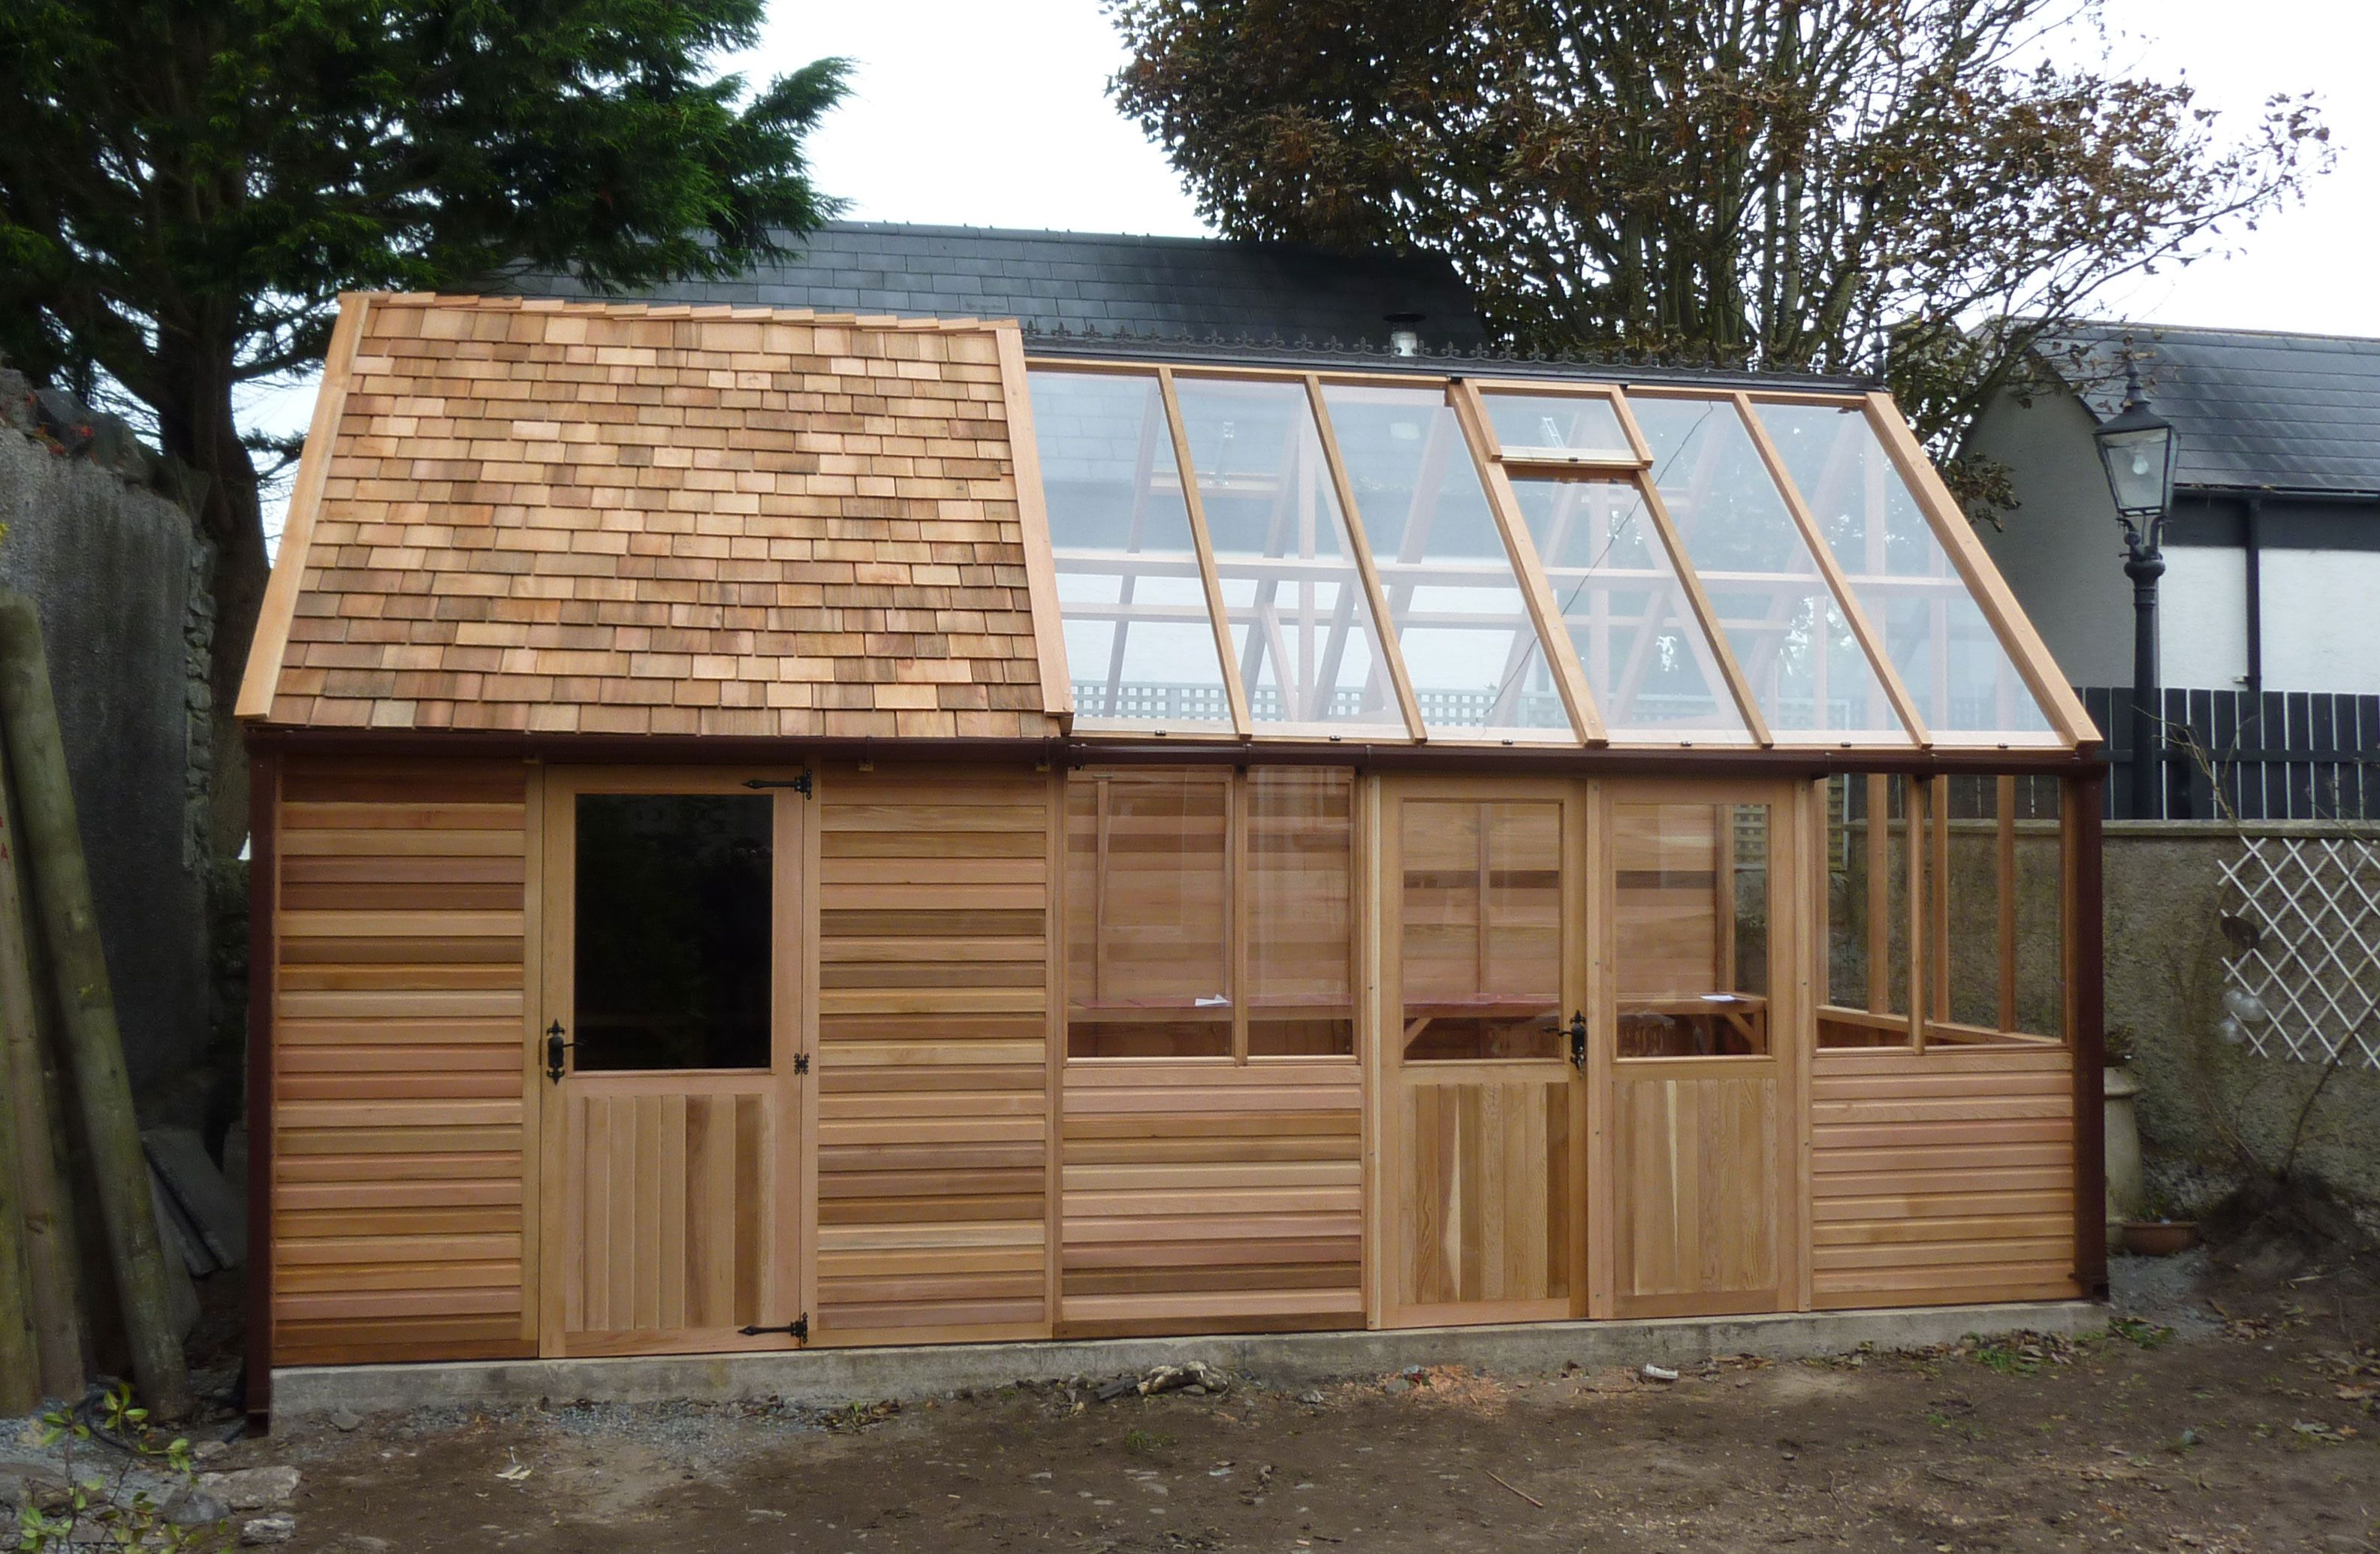 Shed/greenhouse combination Greenhouse shed, Greenhouse